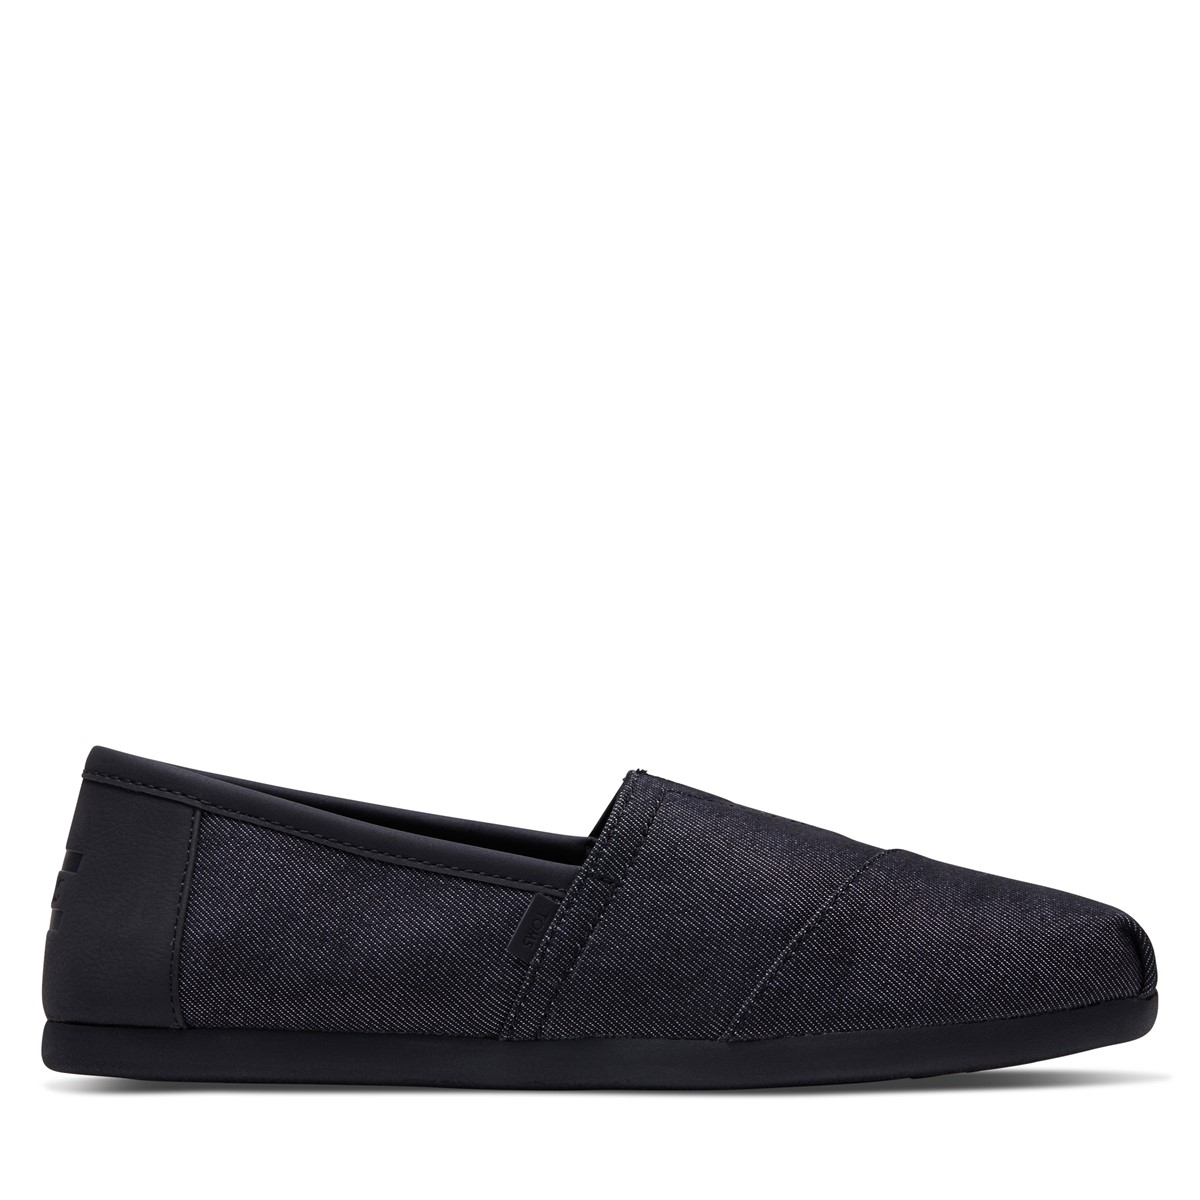 Men's Alpargata Slip-On Shoes in All Black